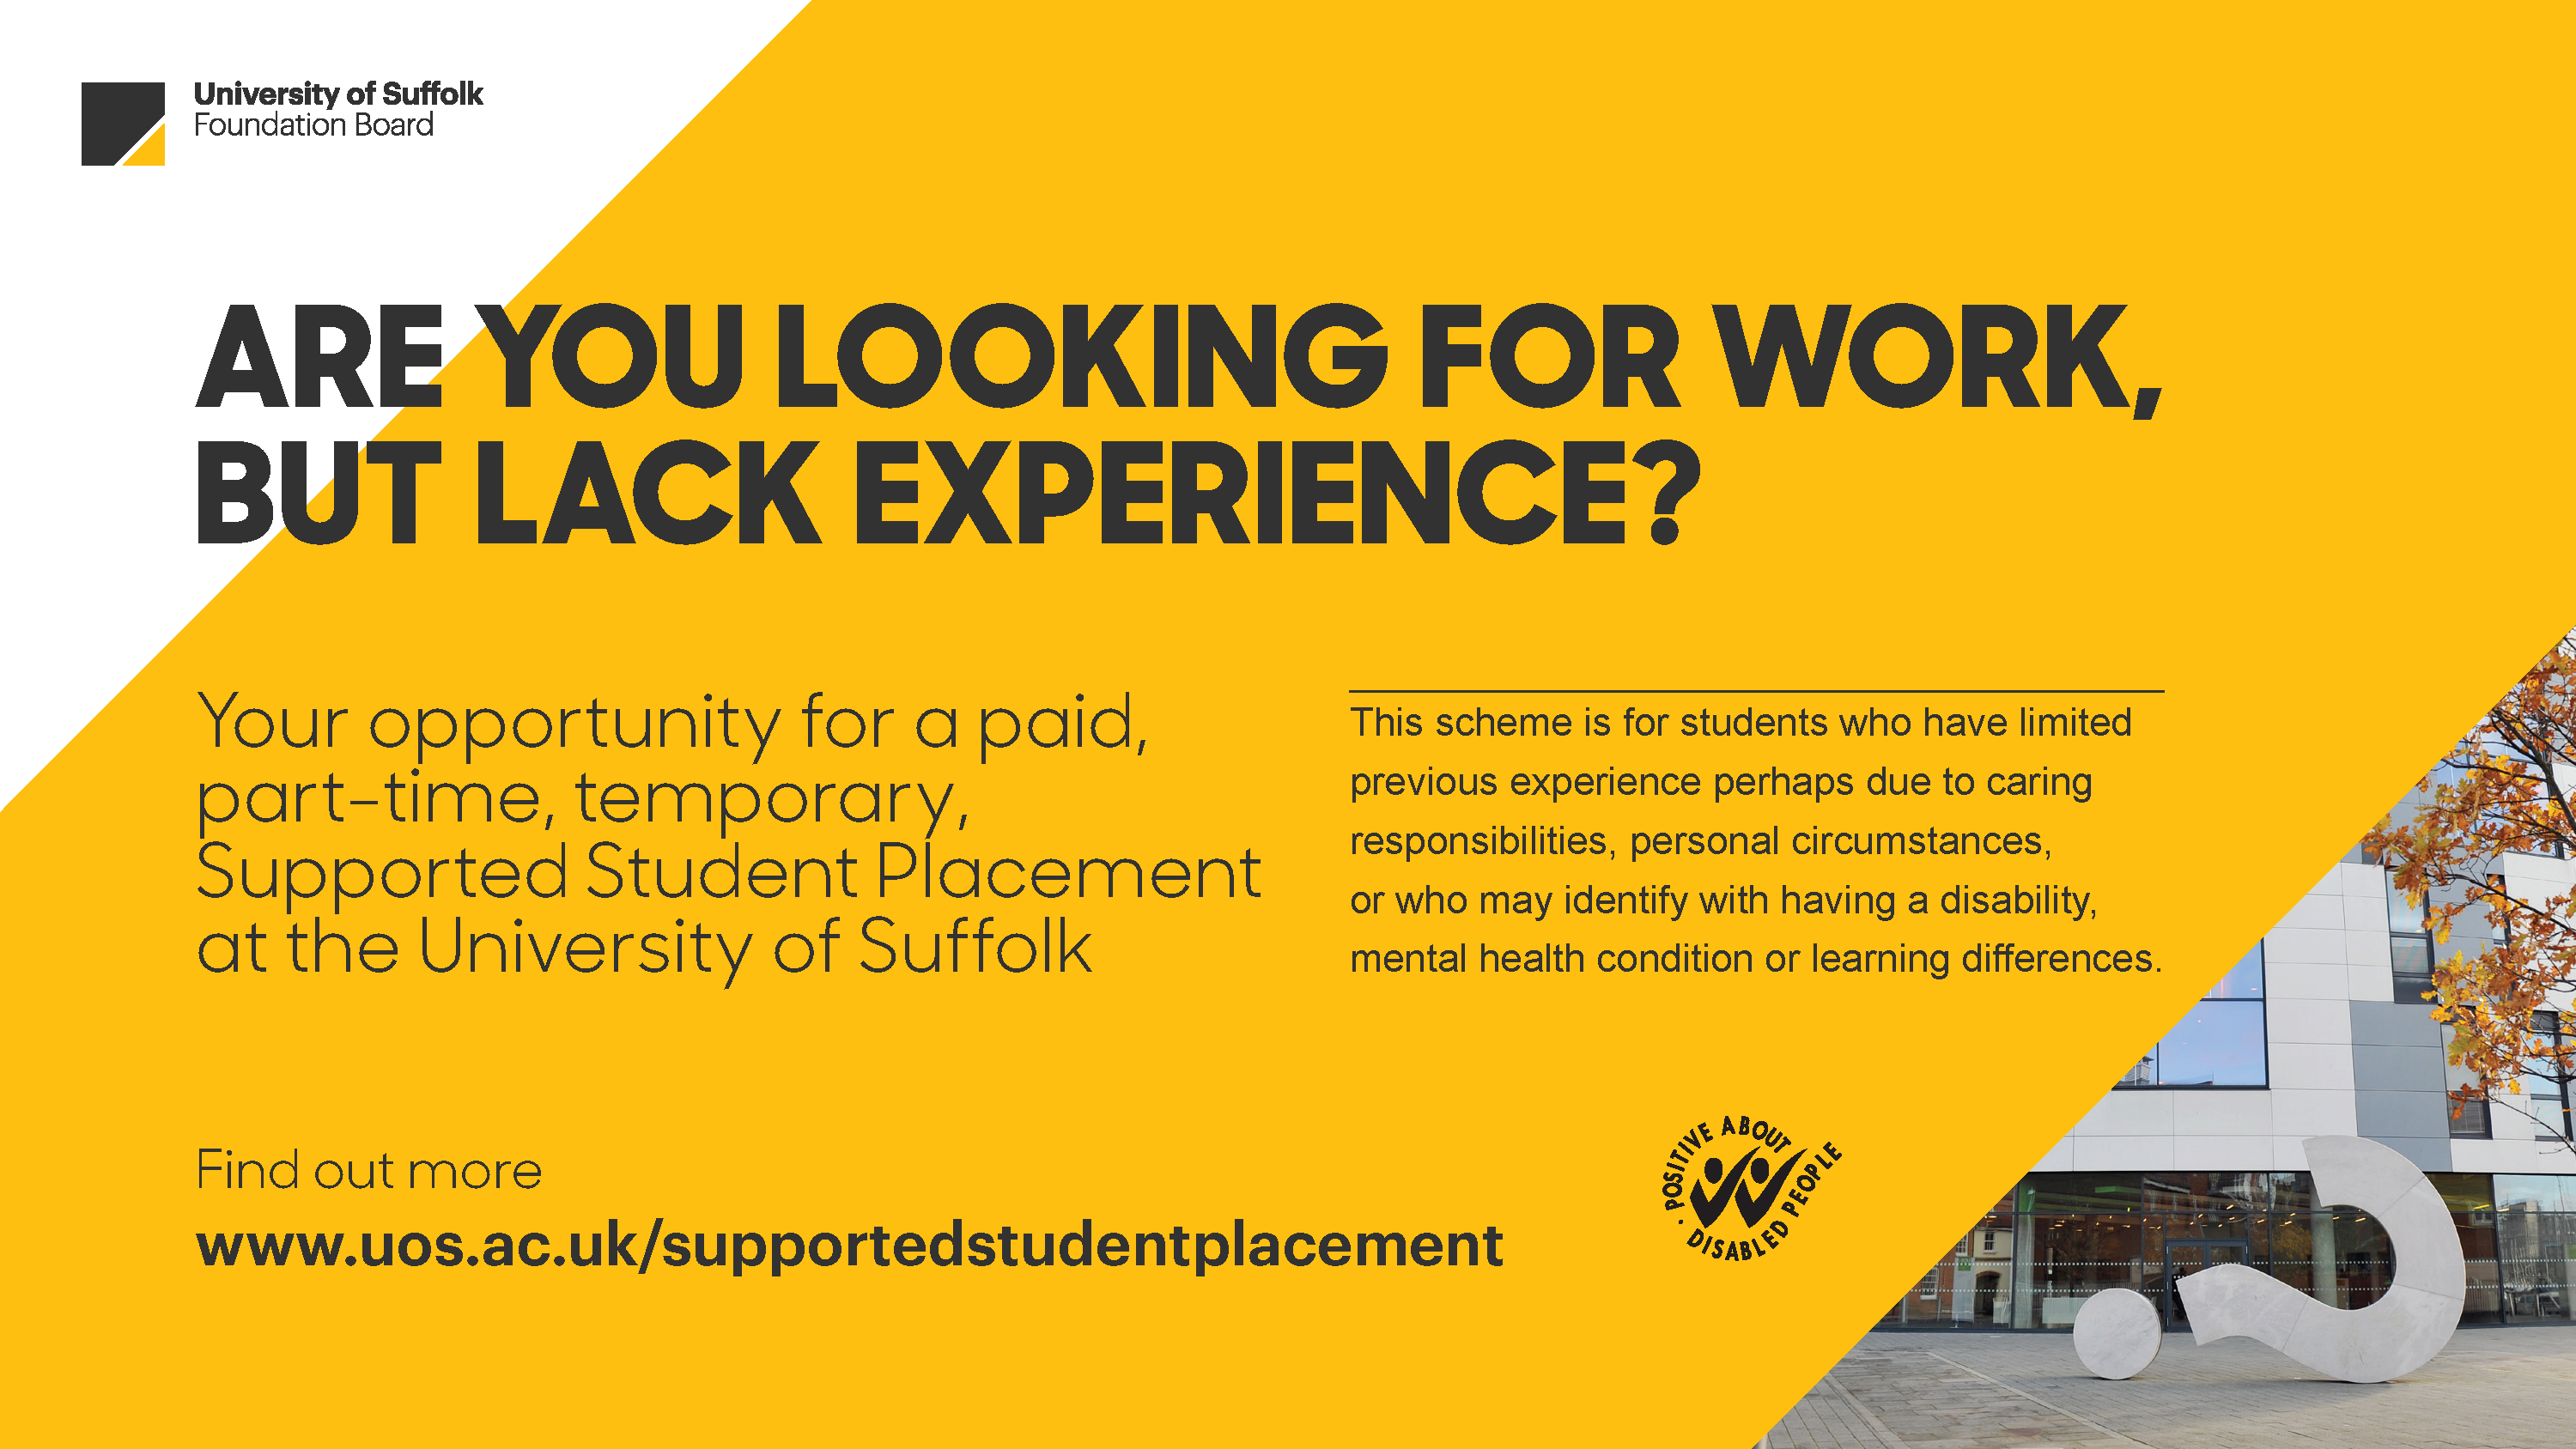 Supported Student Placement Scheme powerpoint 17-18 image